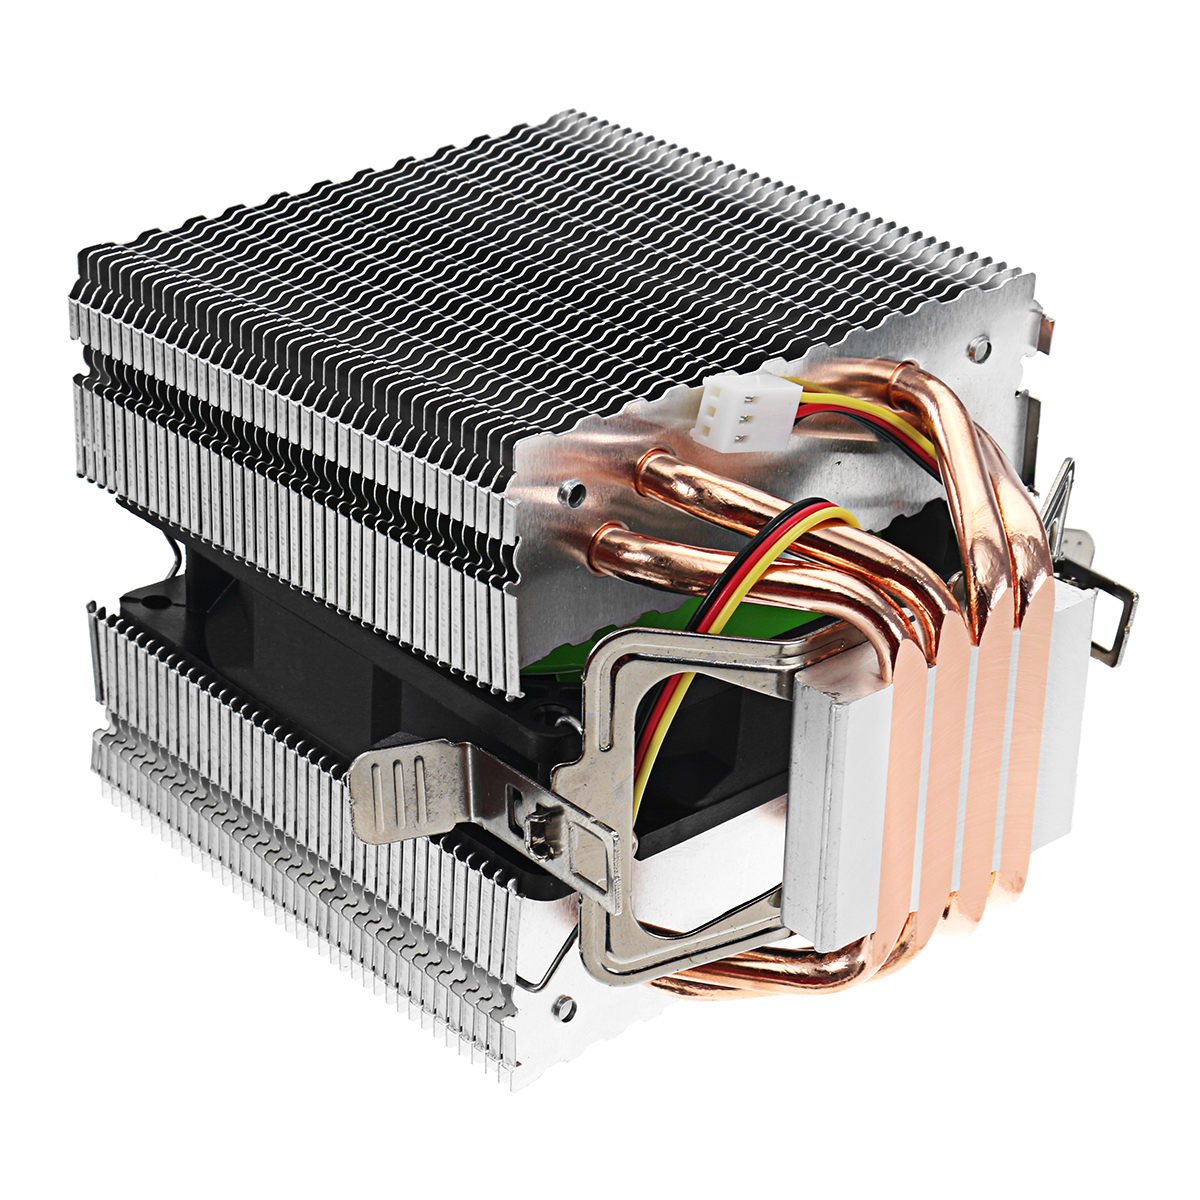 DC 12V 3Pin 2200RPM CPU Cooling Fan Cooler Heat Sink For Intel AMD